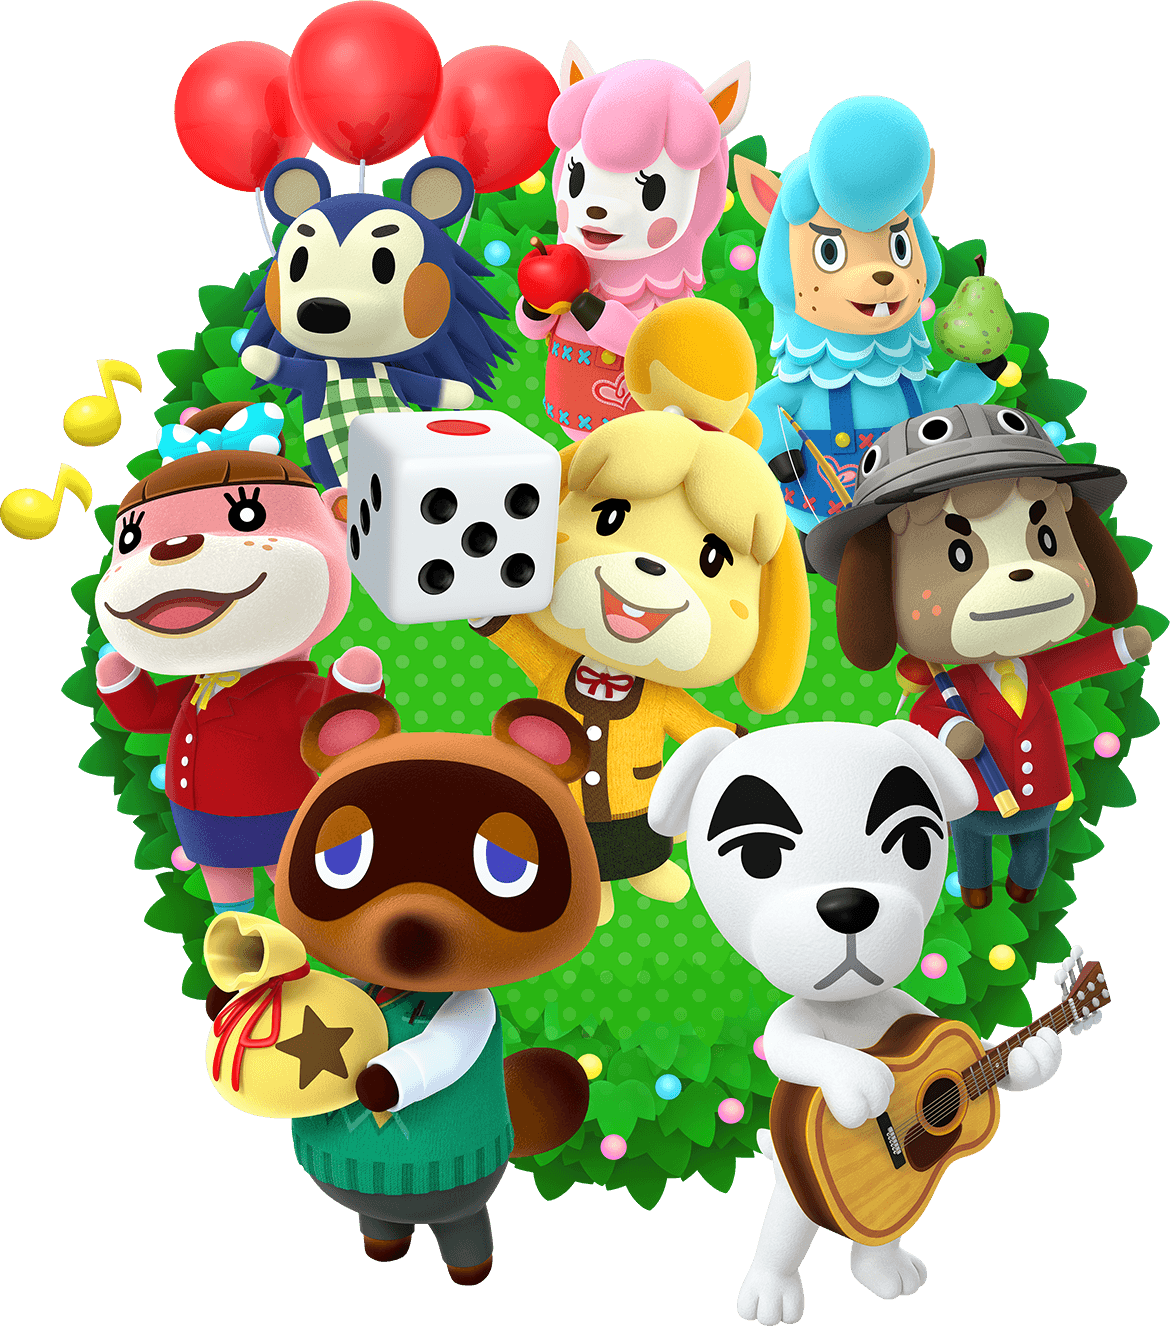 Animal crossing png. Amiibo festival for wii